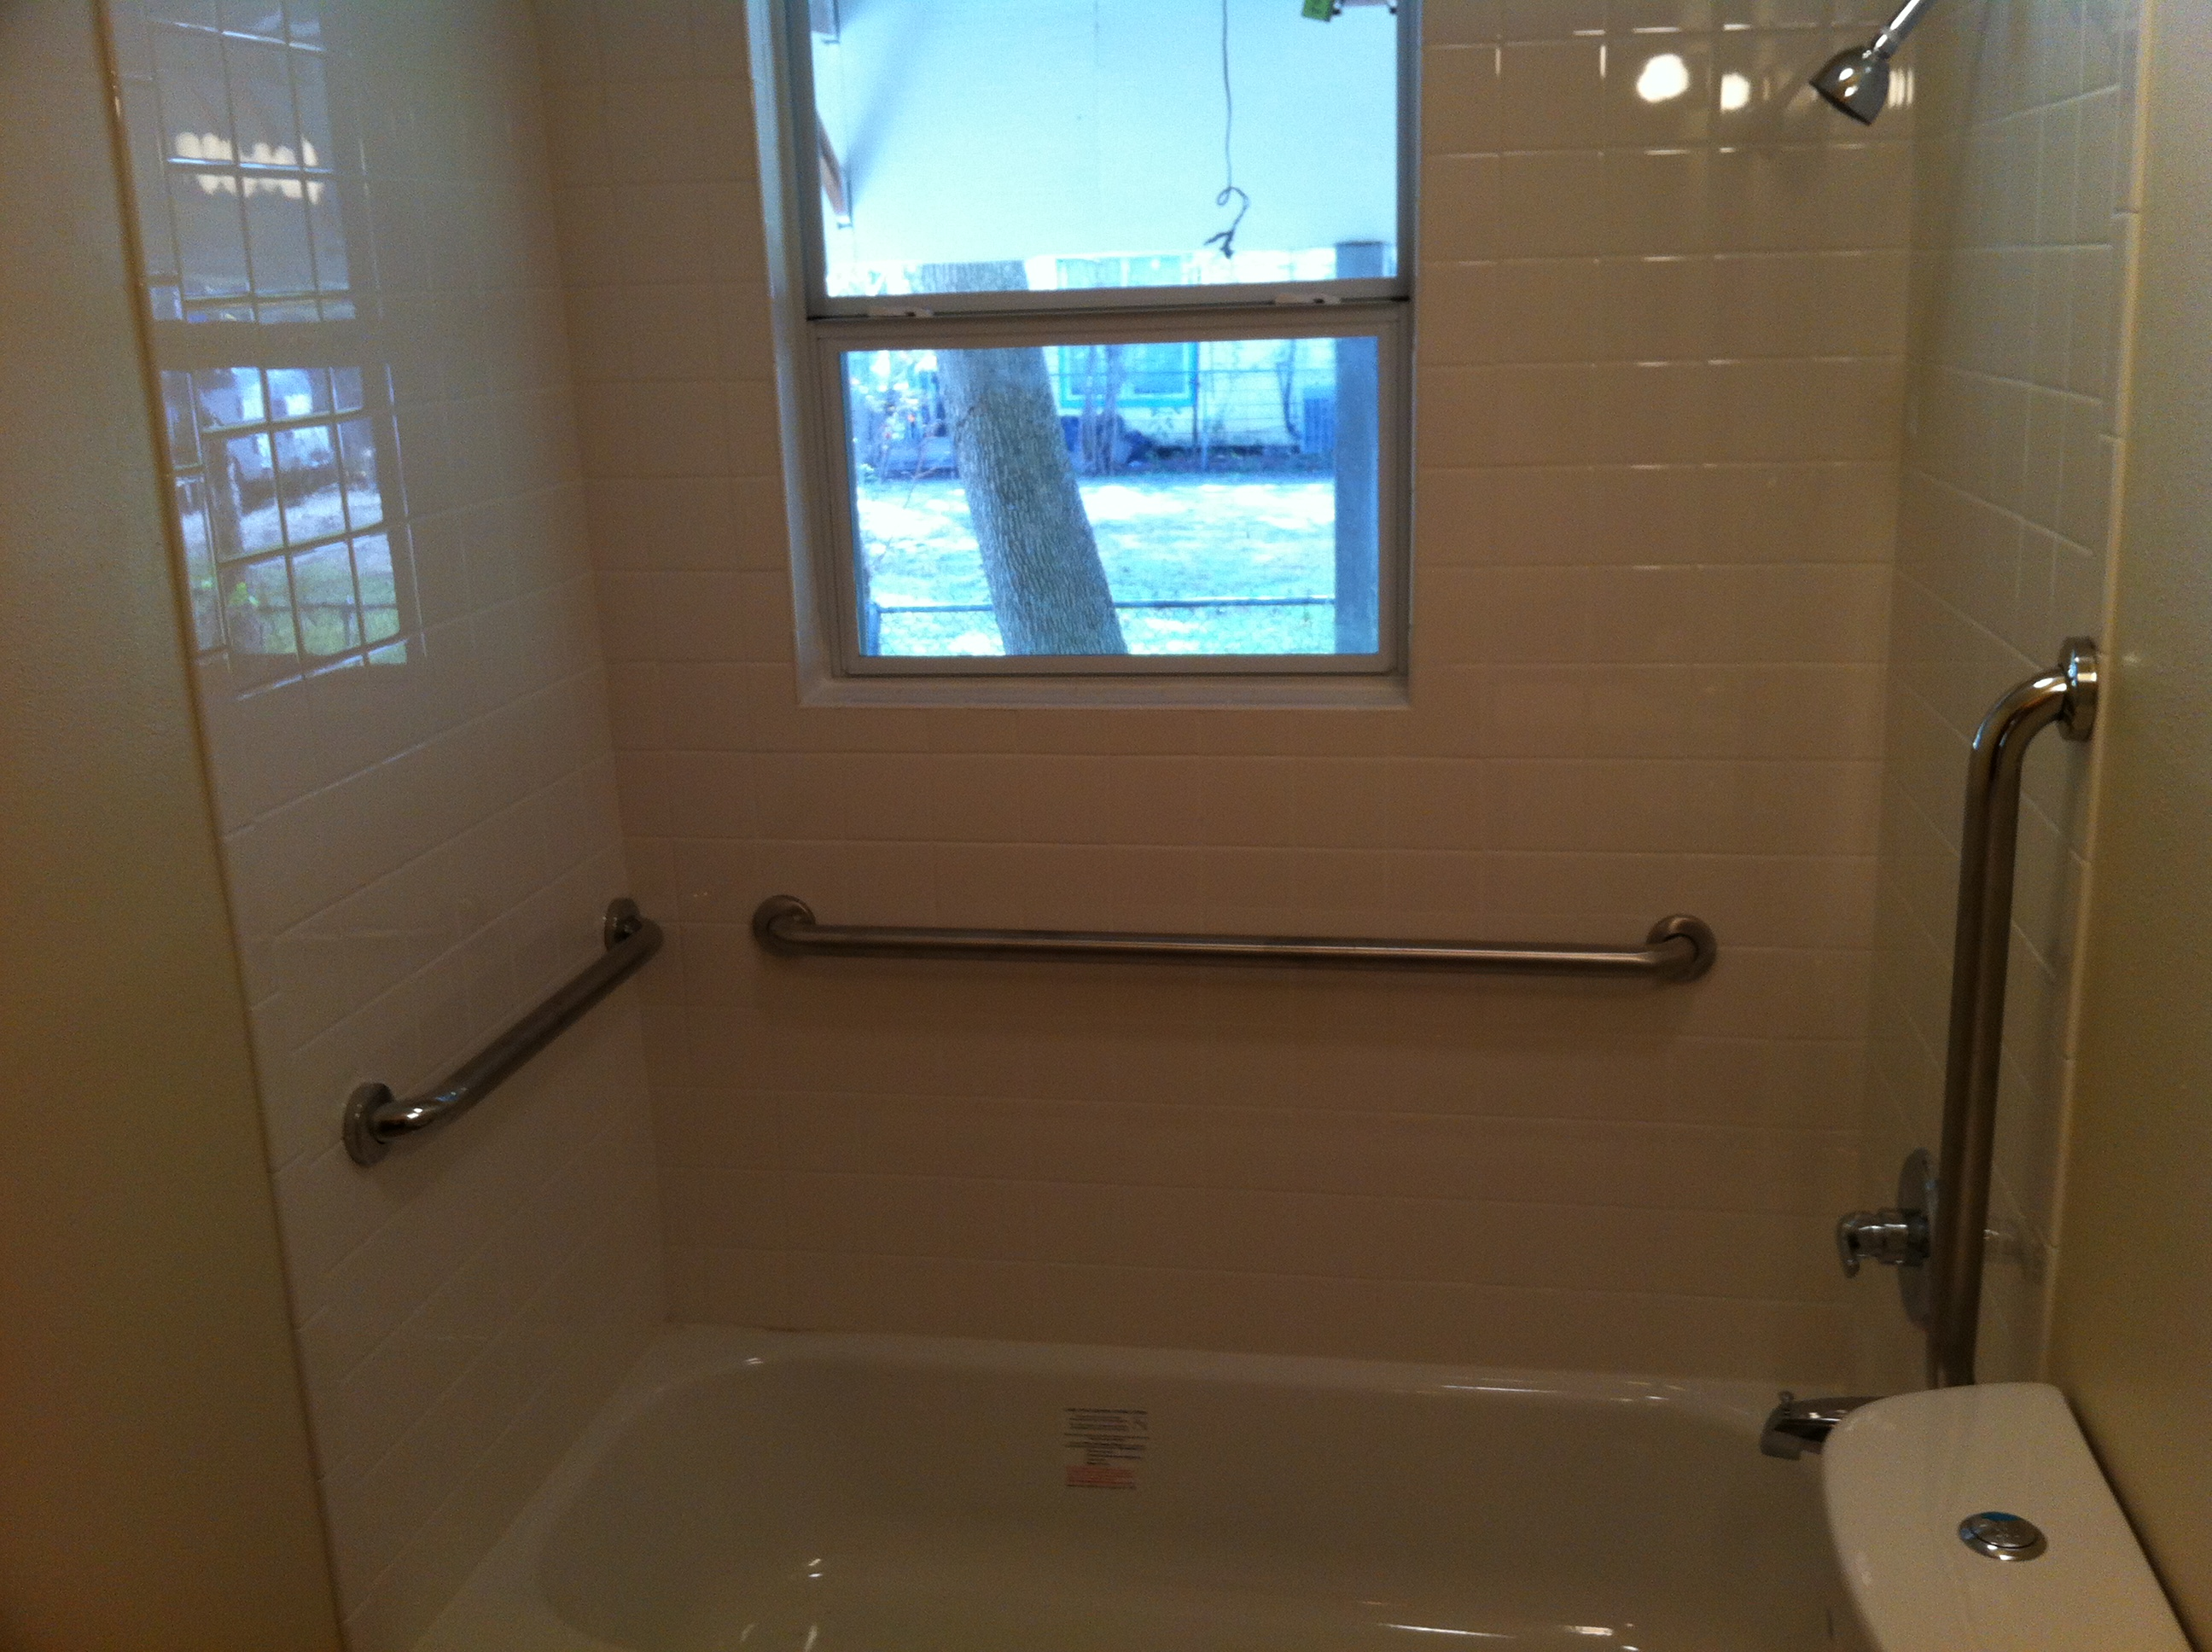 B-C Construction - Remodeling Katy Texas | ADA Compliant Bathrooms